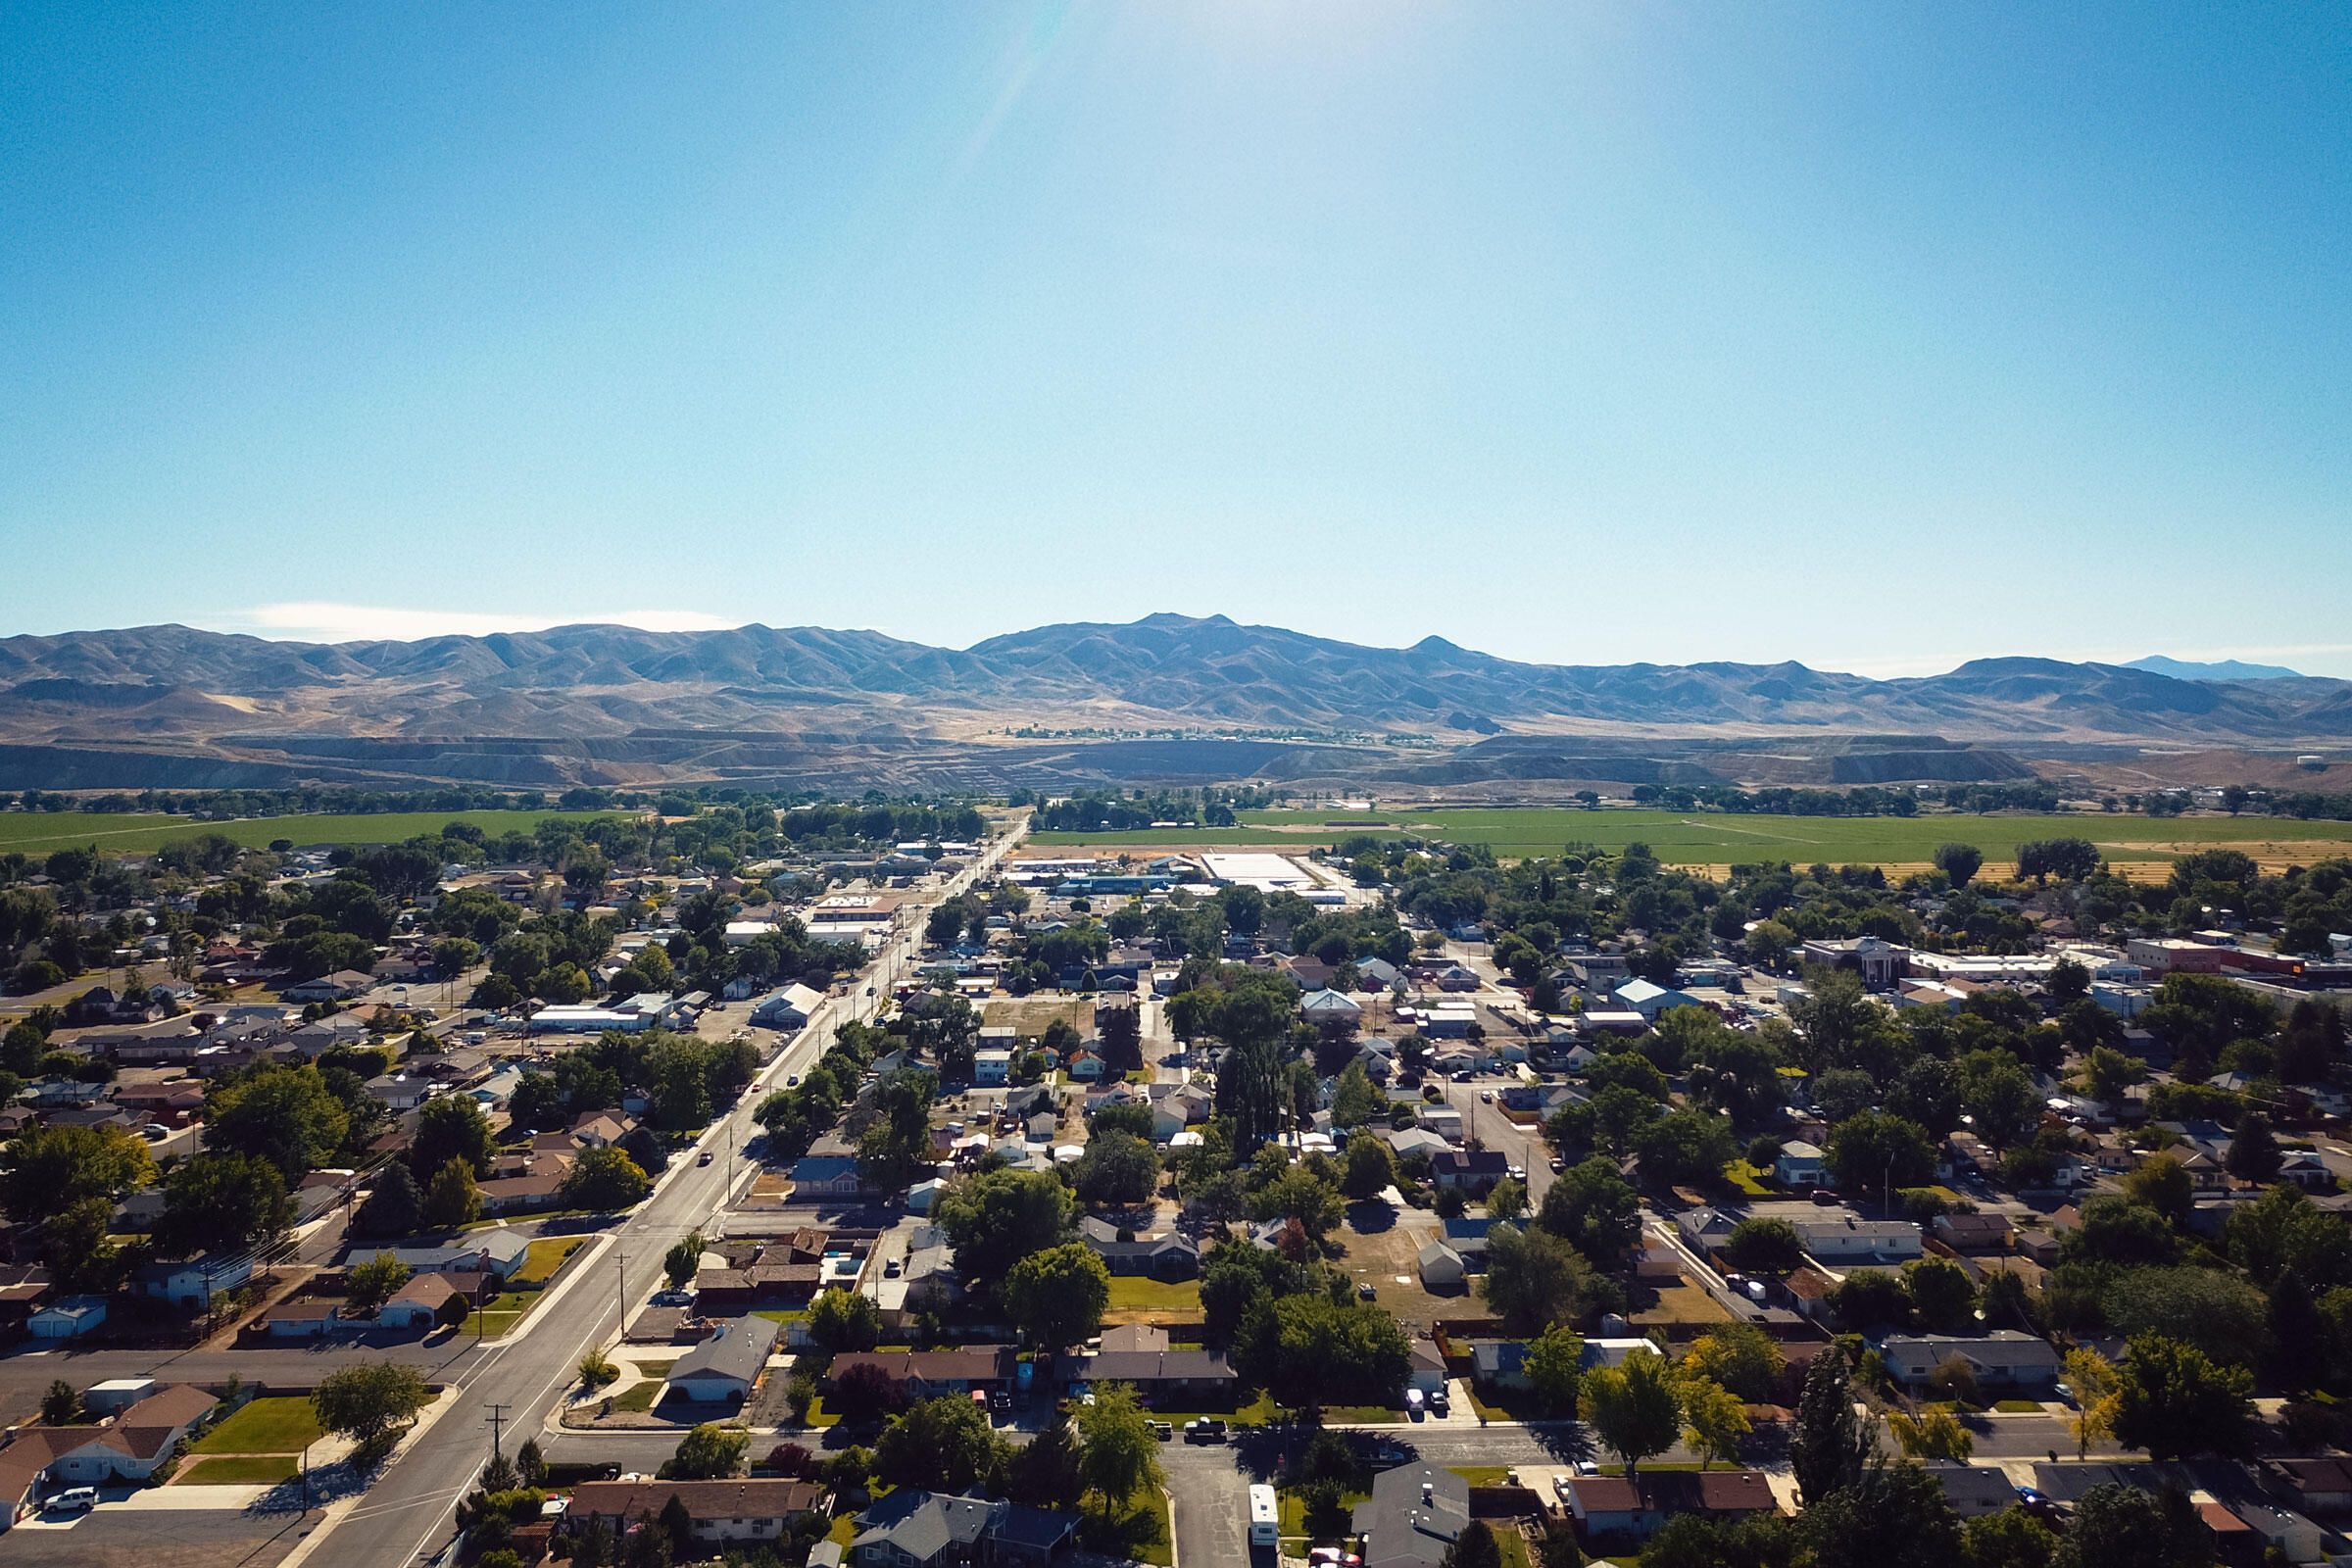 The city of Yerington, population 3,000, is only a few miles from the abandoned Anaconda mine. Zac Visco and Maggie Starbard